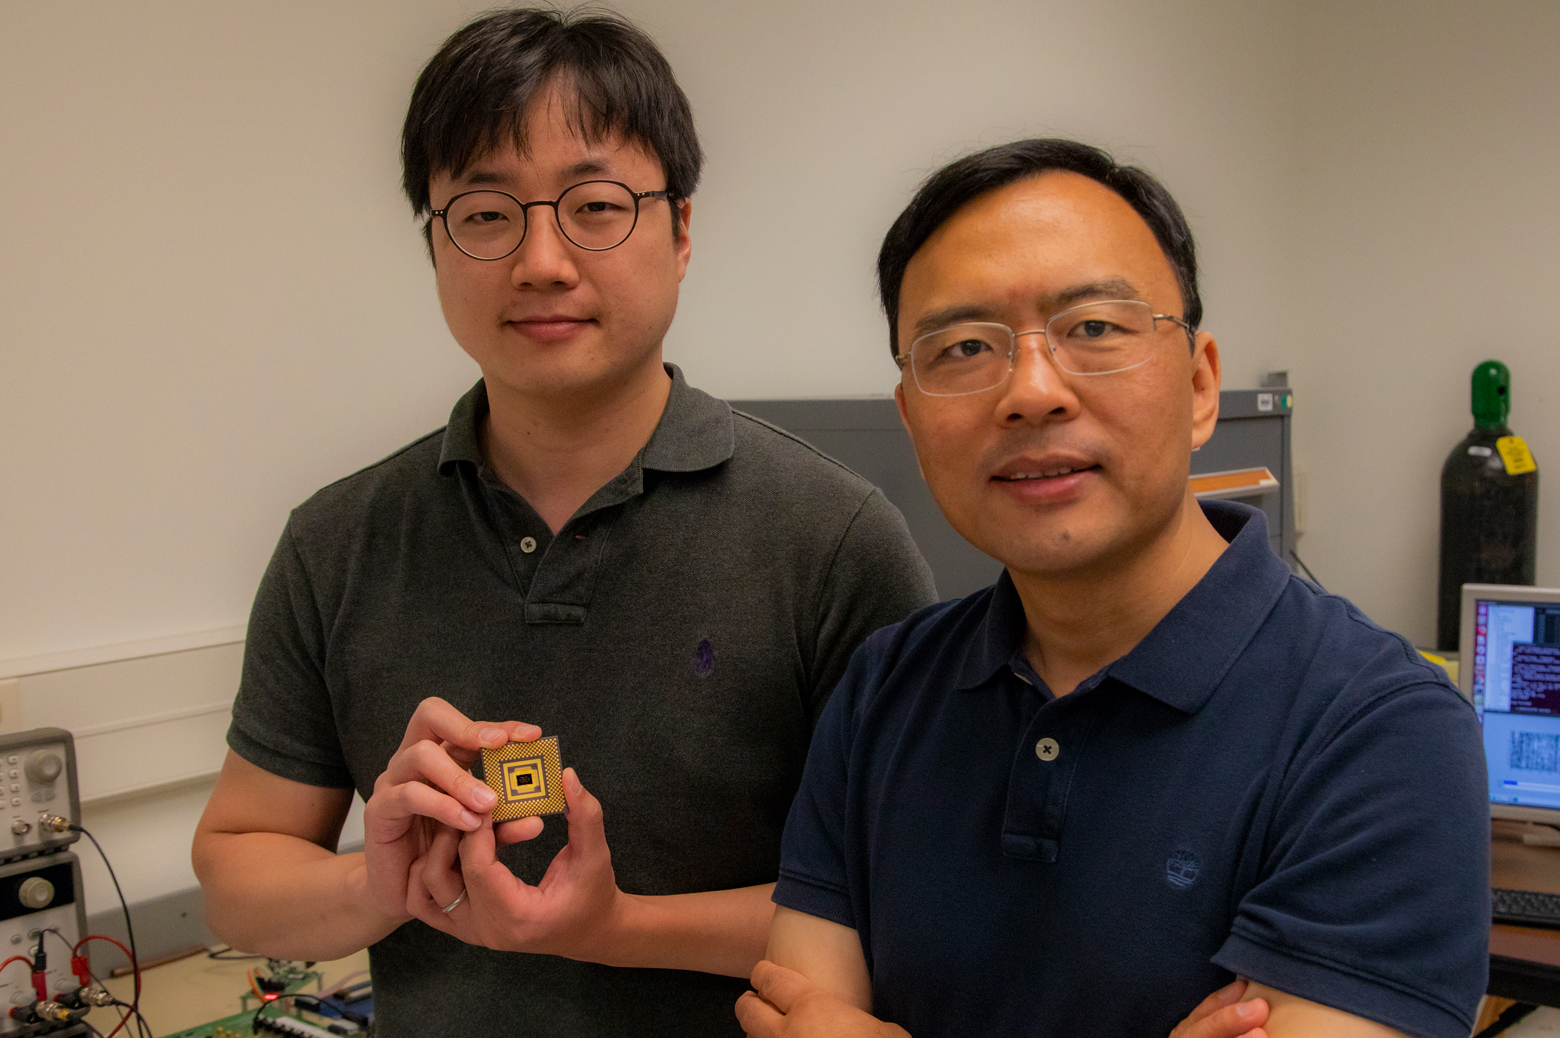 Wei Lu stands with first author Seung Hwan Lee, an electrical engineering PhD student, who holds the memristor array. Photo: Robert Coelius, Michigan Engineering Communications & Marketing